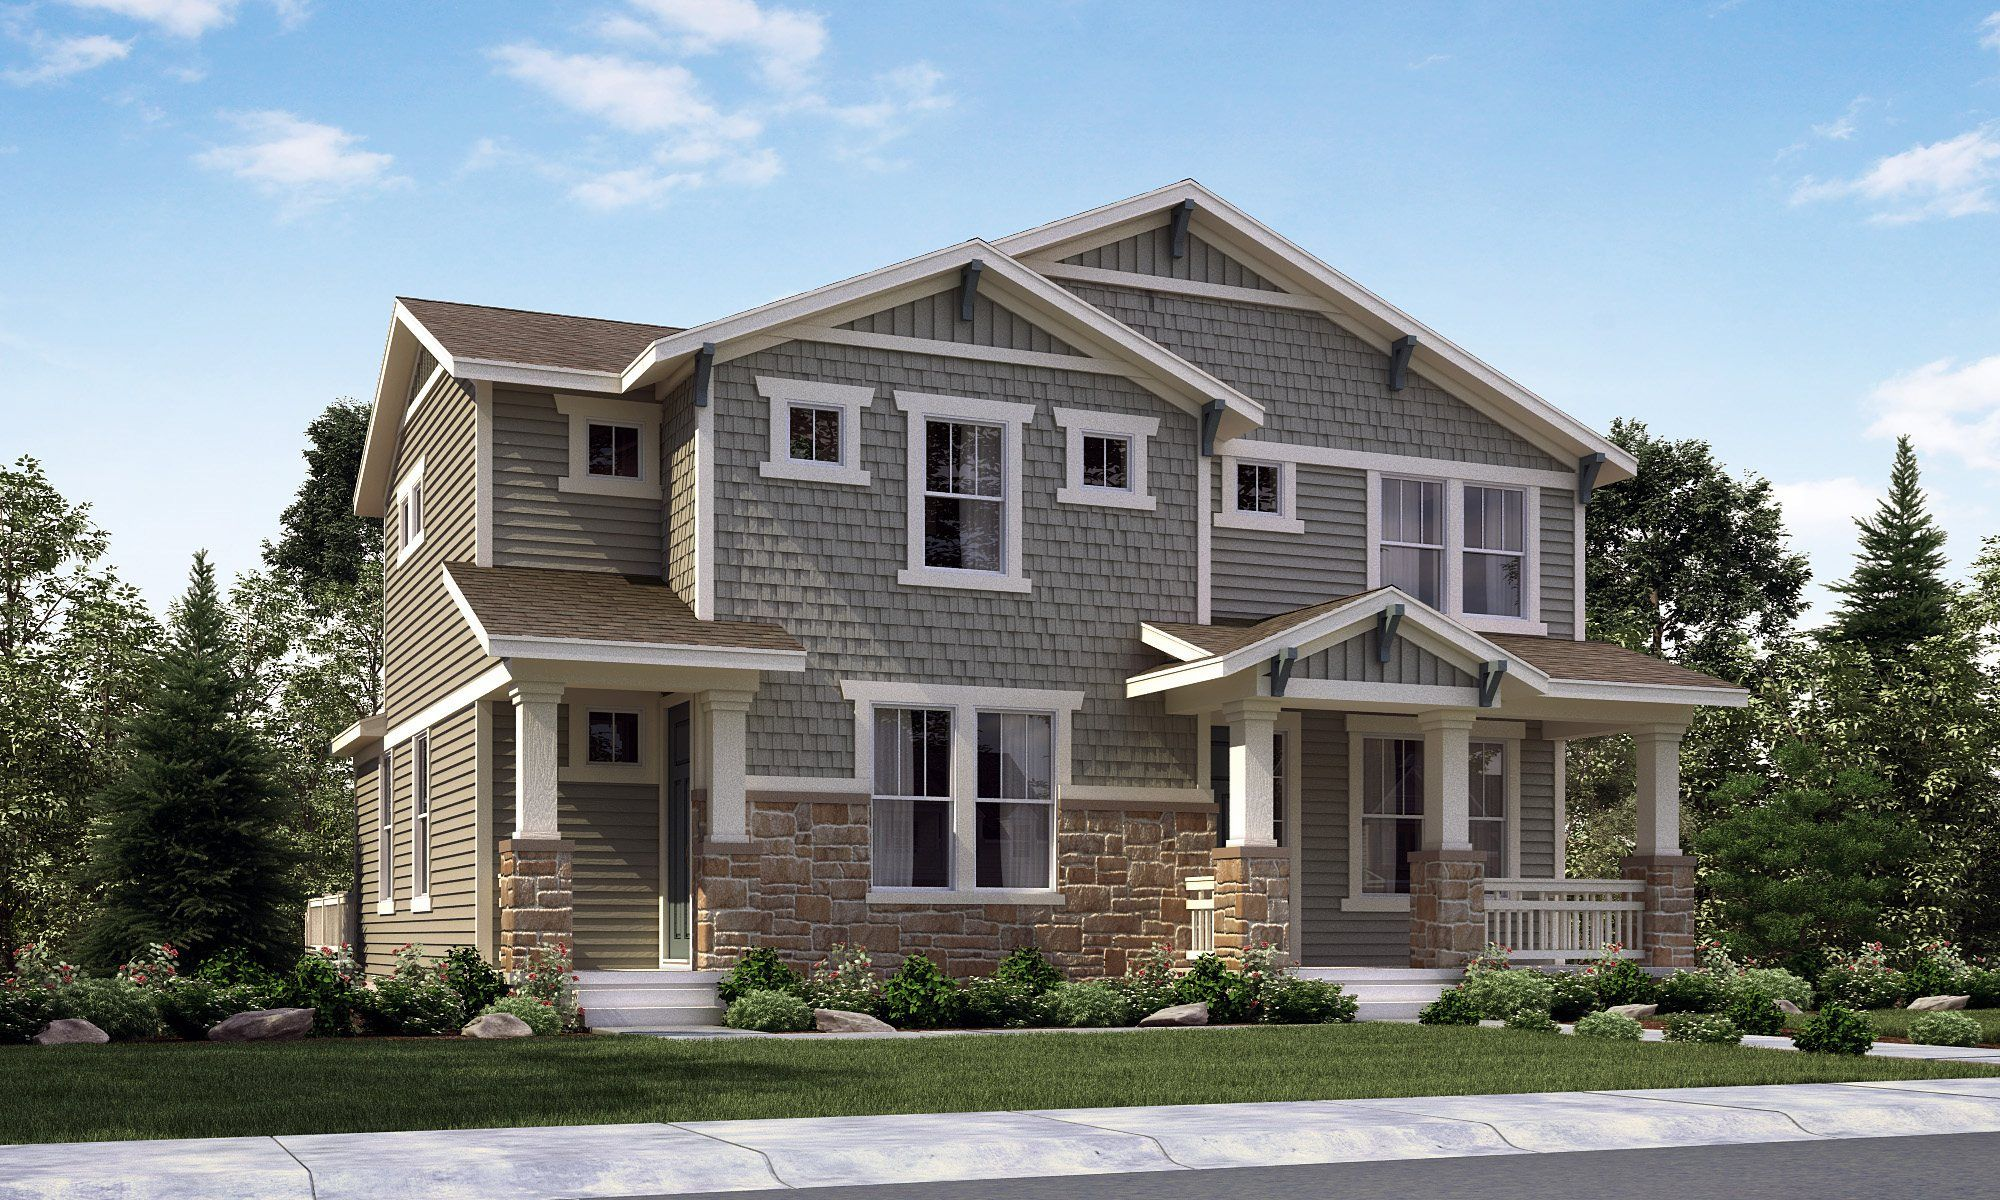 Single Family for Sale at Stapleton: The Generations Collection - Legacy 5449 Verbena Street Denver, Colorado 80238 United States